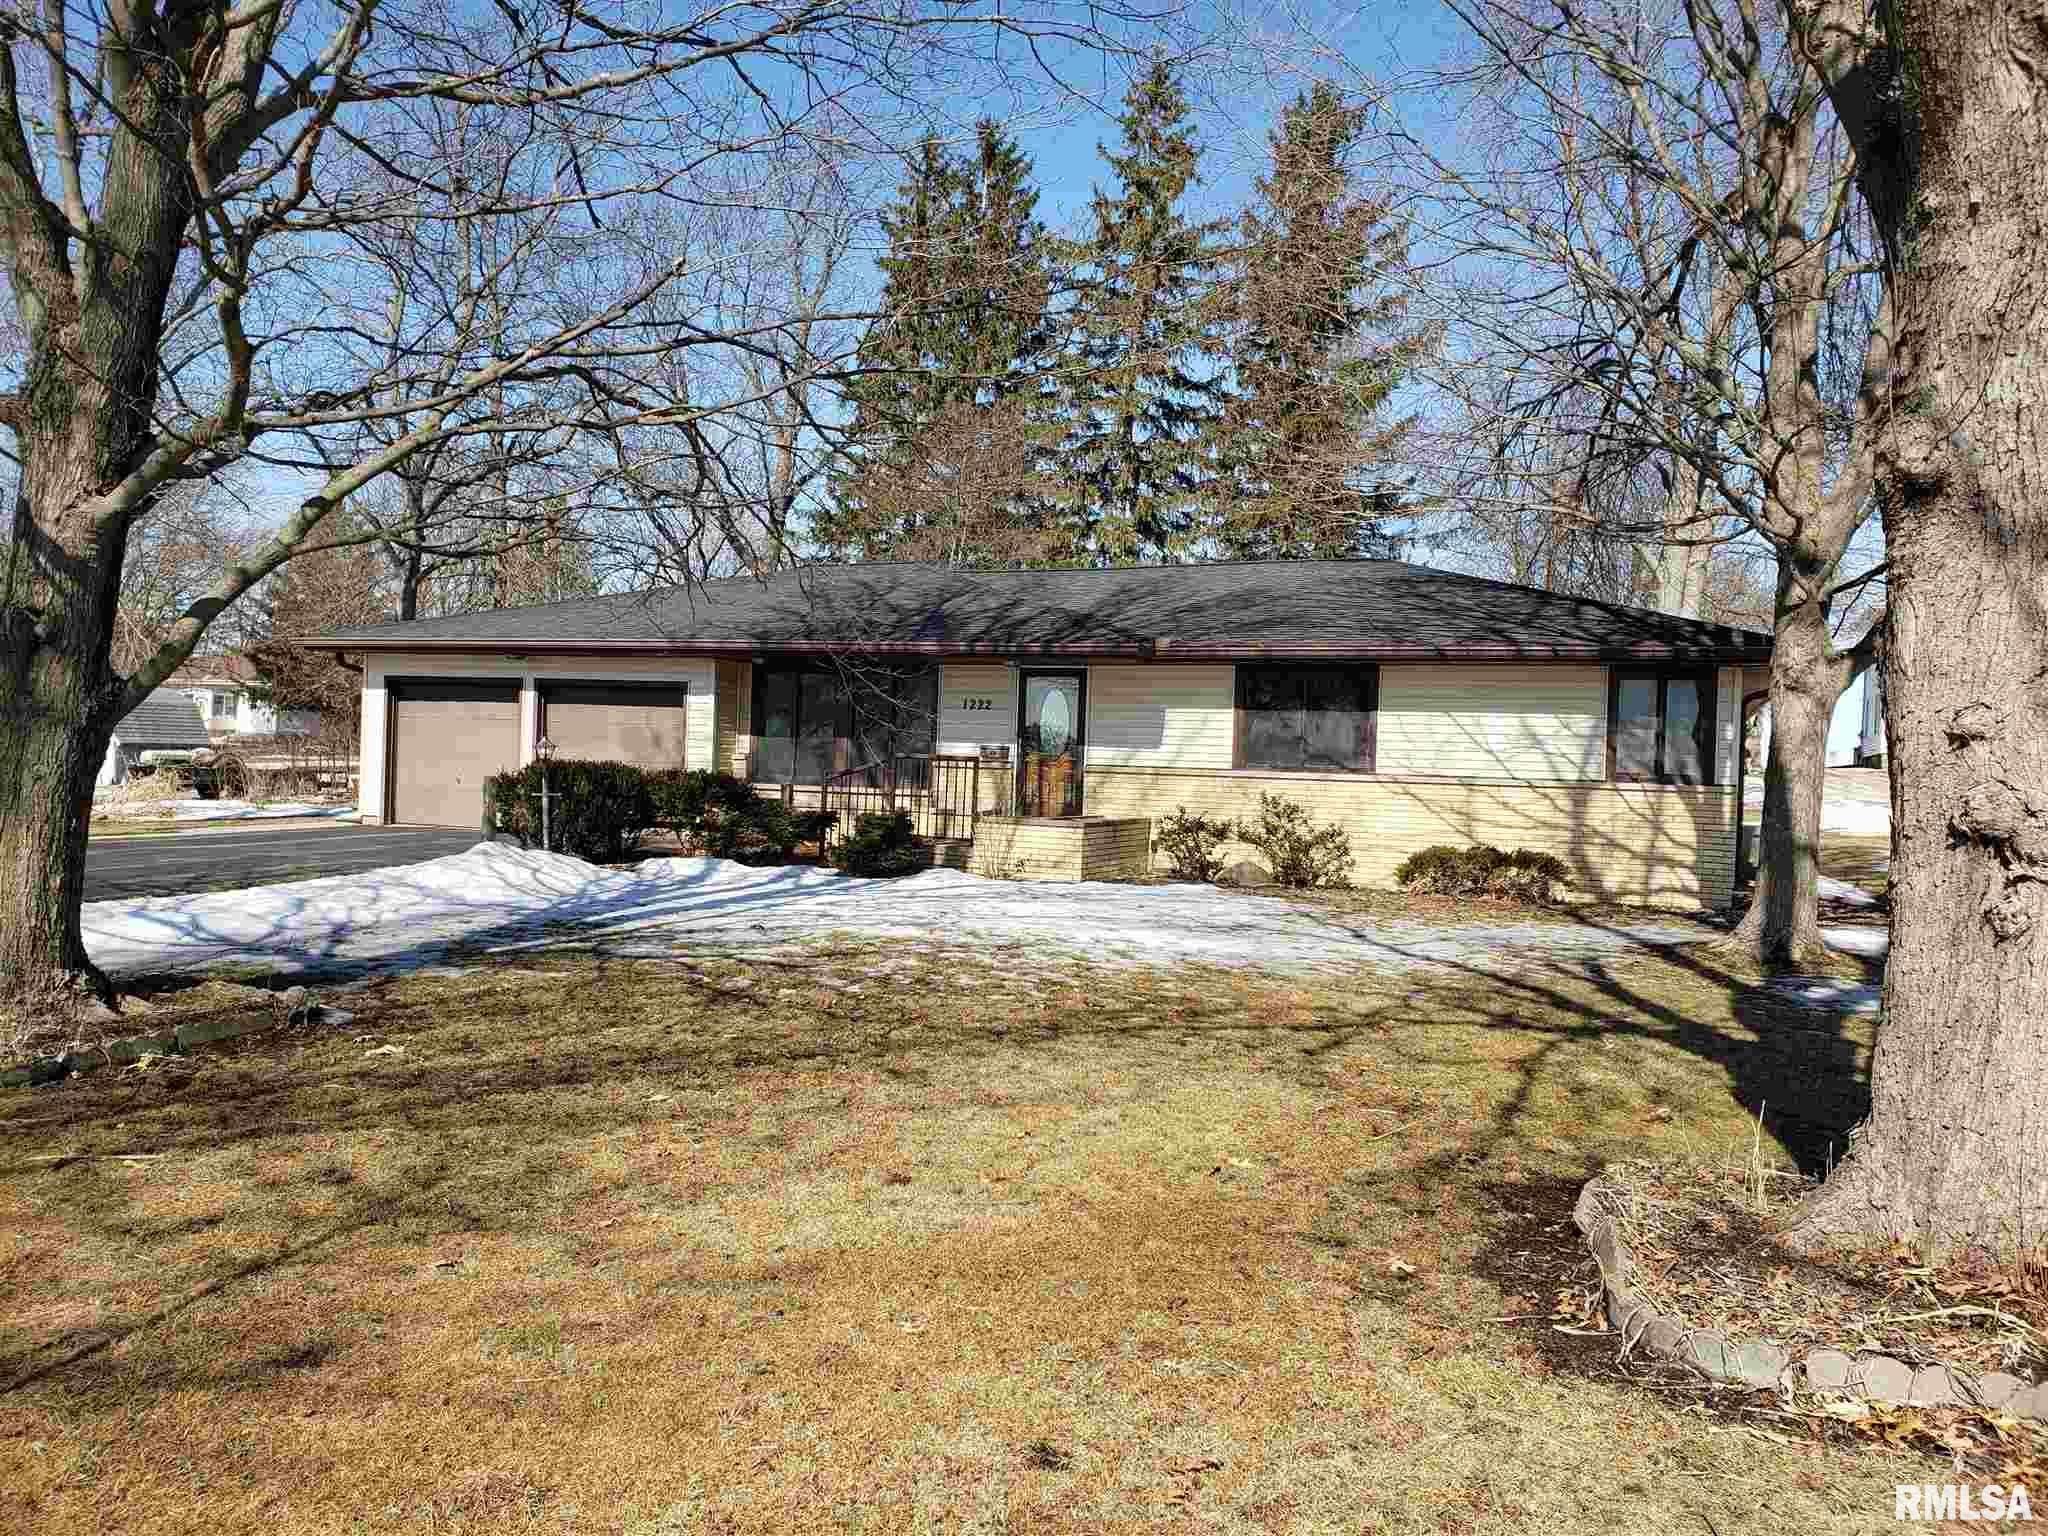 1222 E MCKINLEY Property Photo - Lowpoint, IL real estate listing